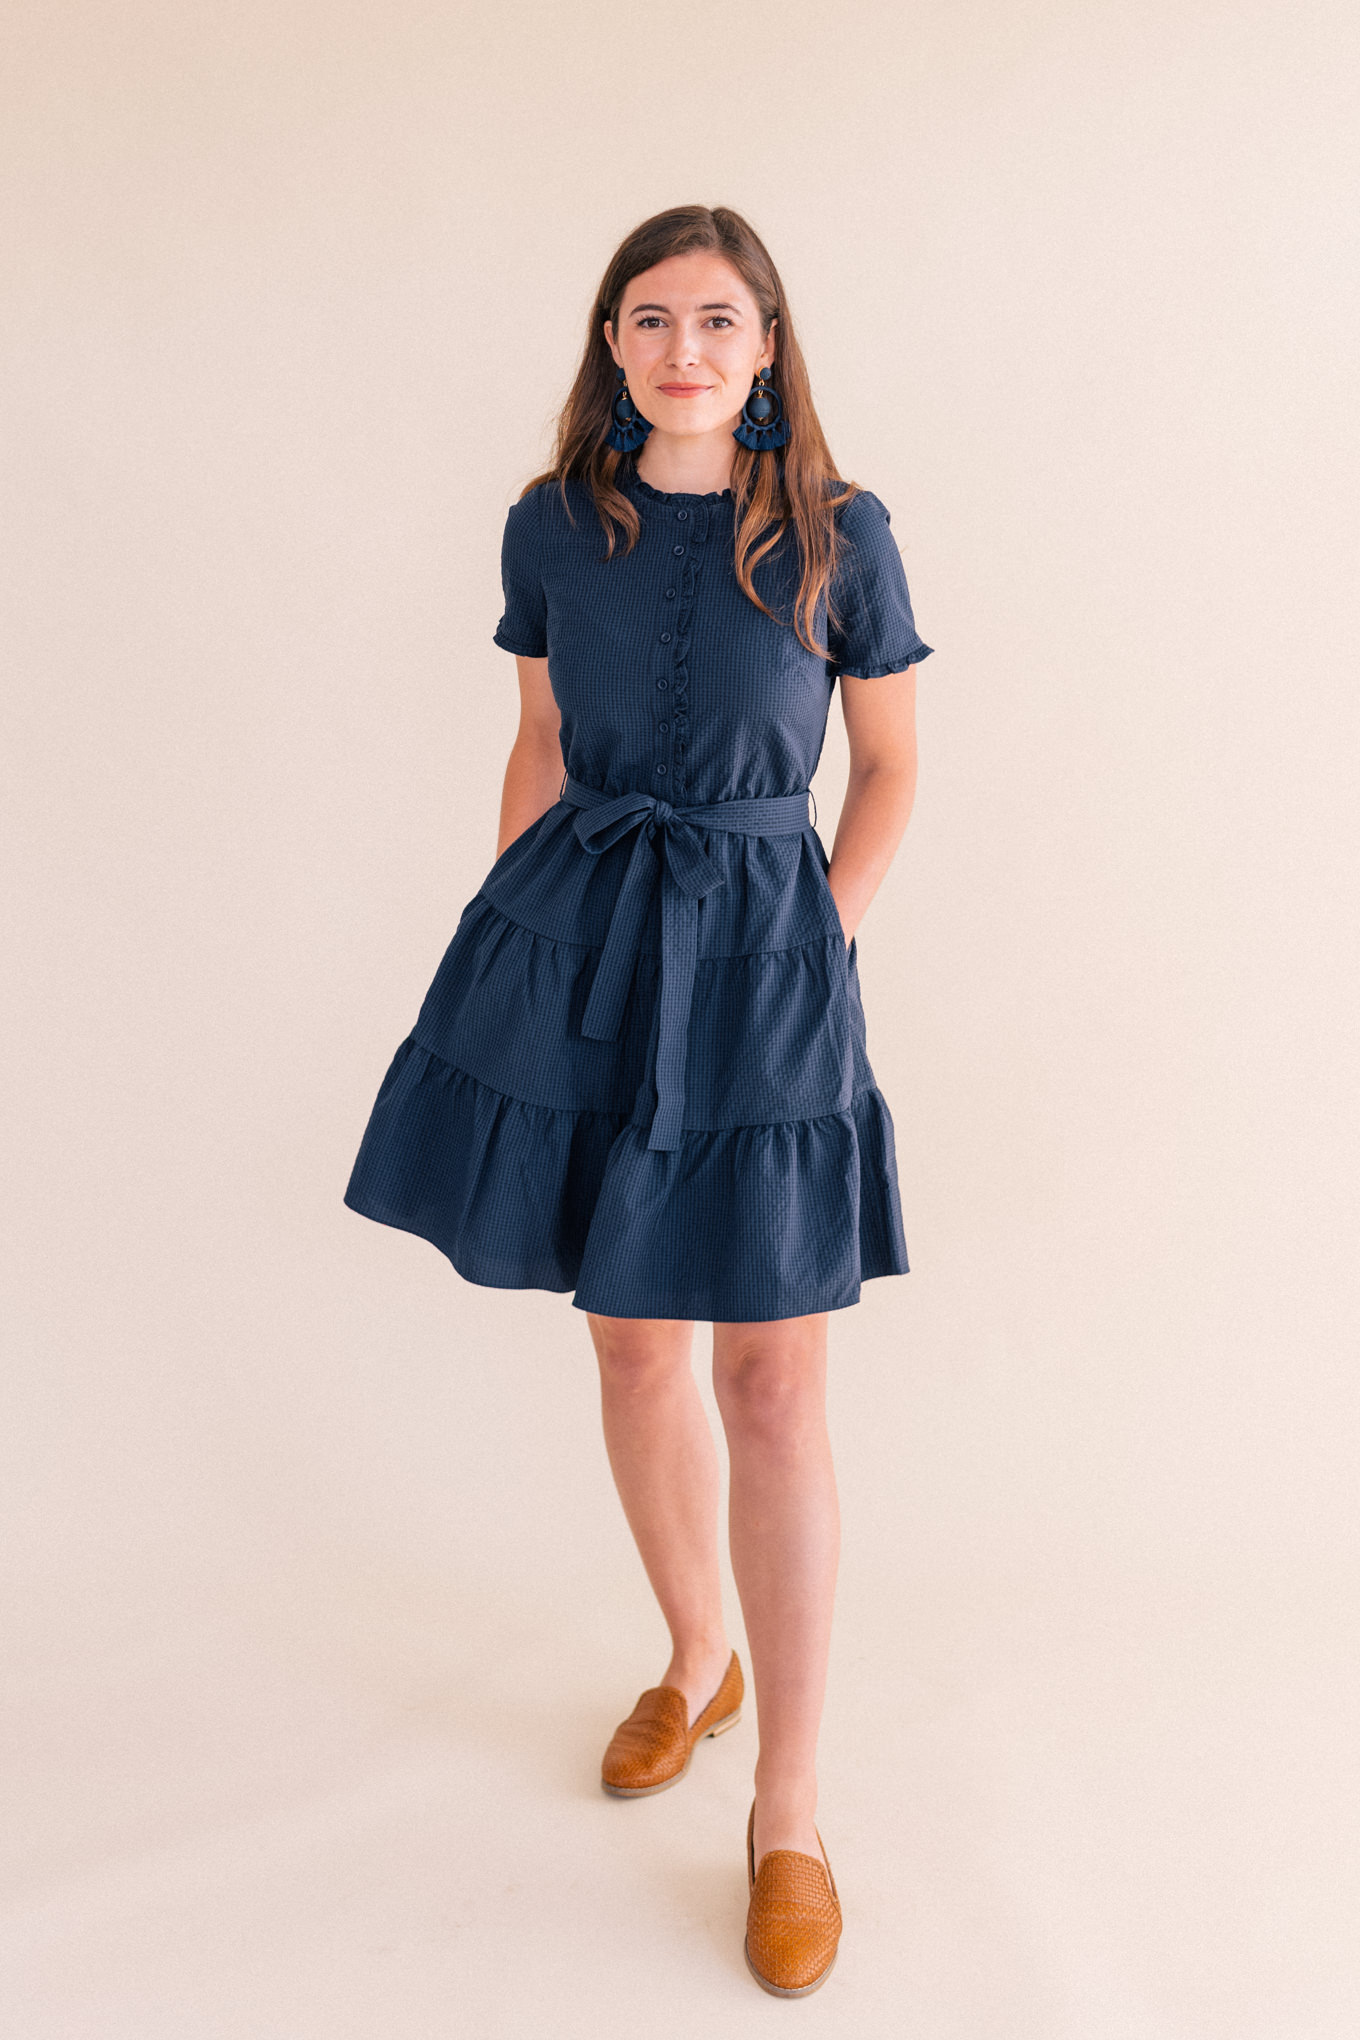 august office dresses